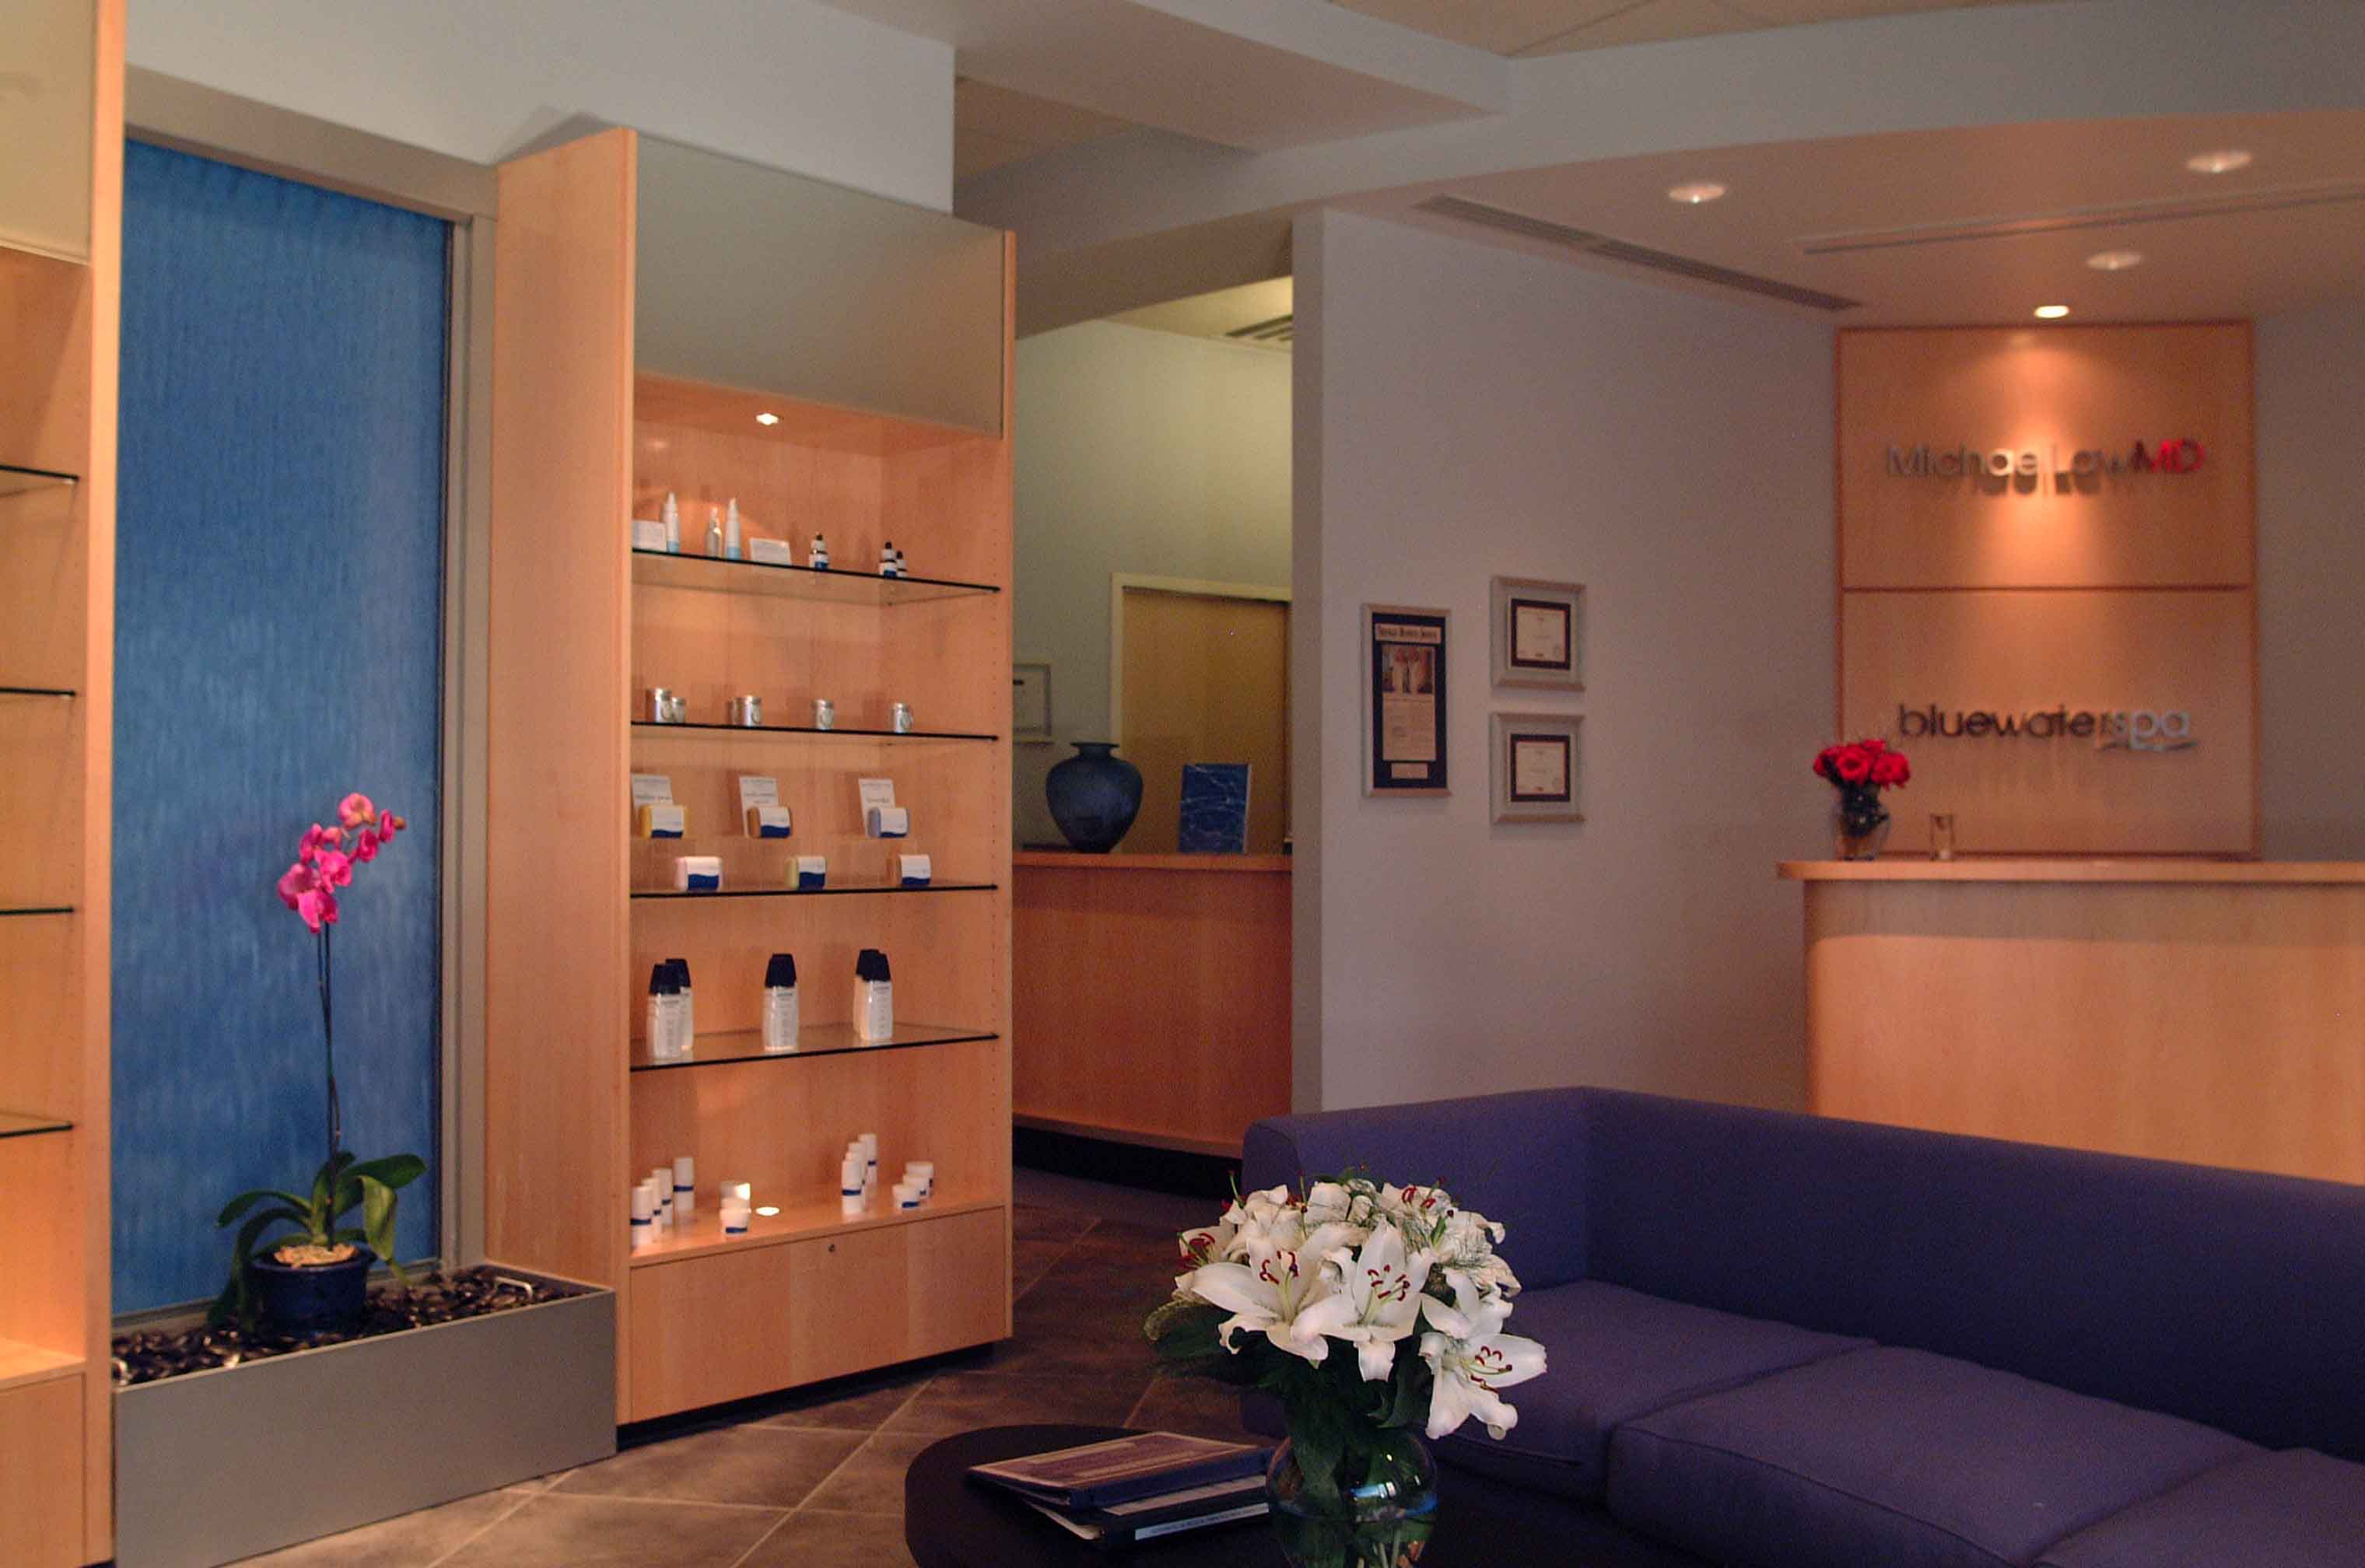 Medical Spas: Medical Spa Consultant and Laser Expert